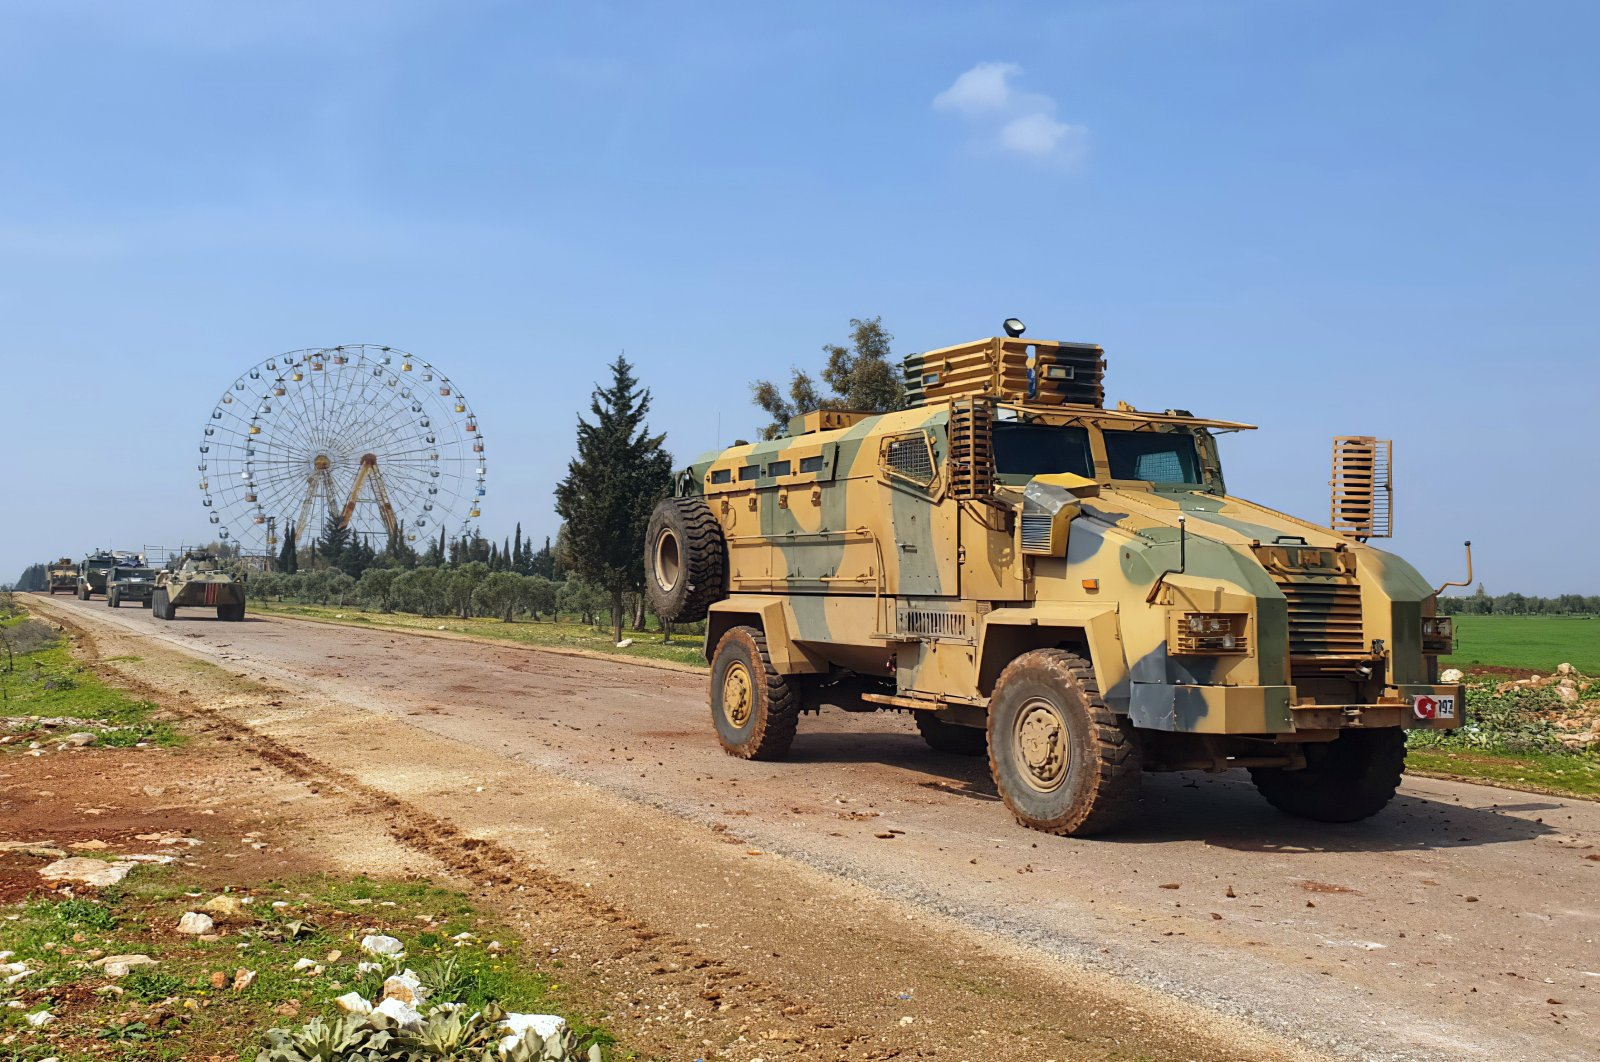 Turkish and Russian troops patrol on the M4 highway, which runs east-west through Idlib province, Syria, March 15, 2020. (Turkish Defense Ministry via AP)